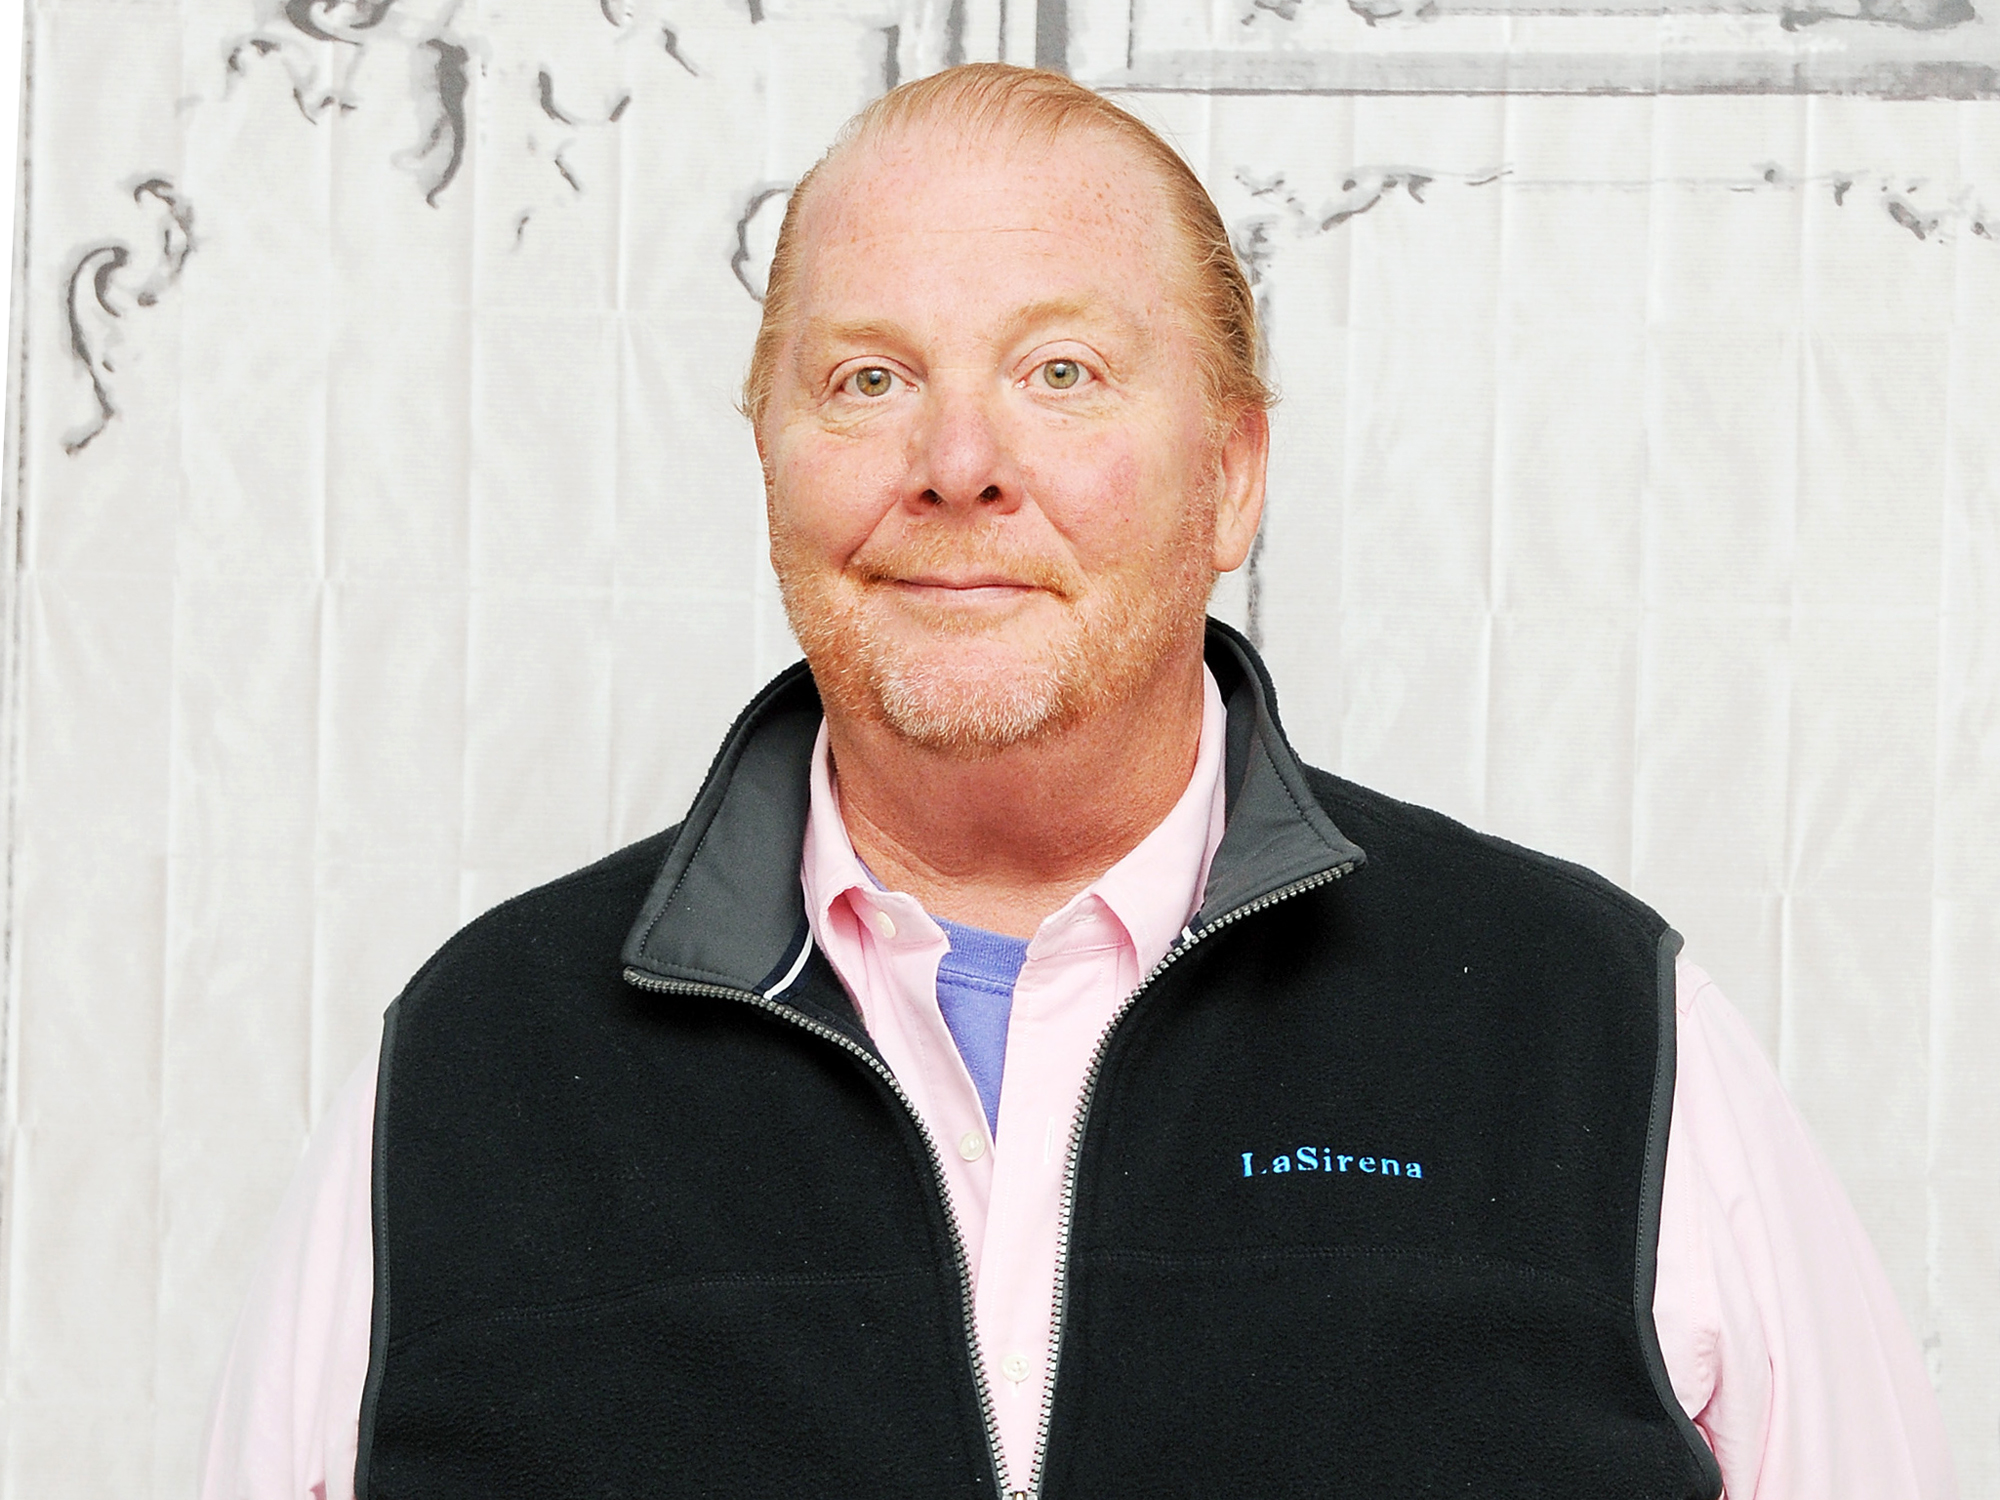 Celebrity Chef Mario Batali Accused of Sexual Misconduct by Multiple Women